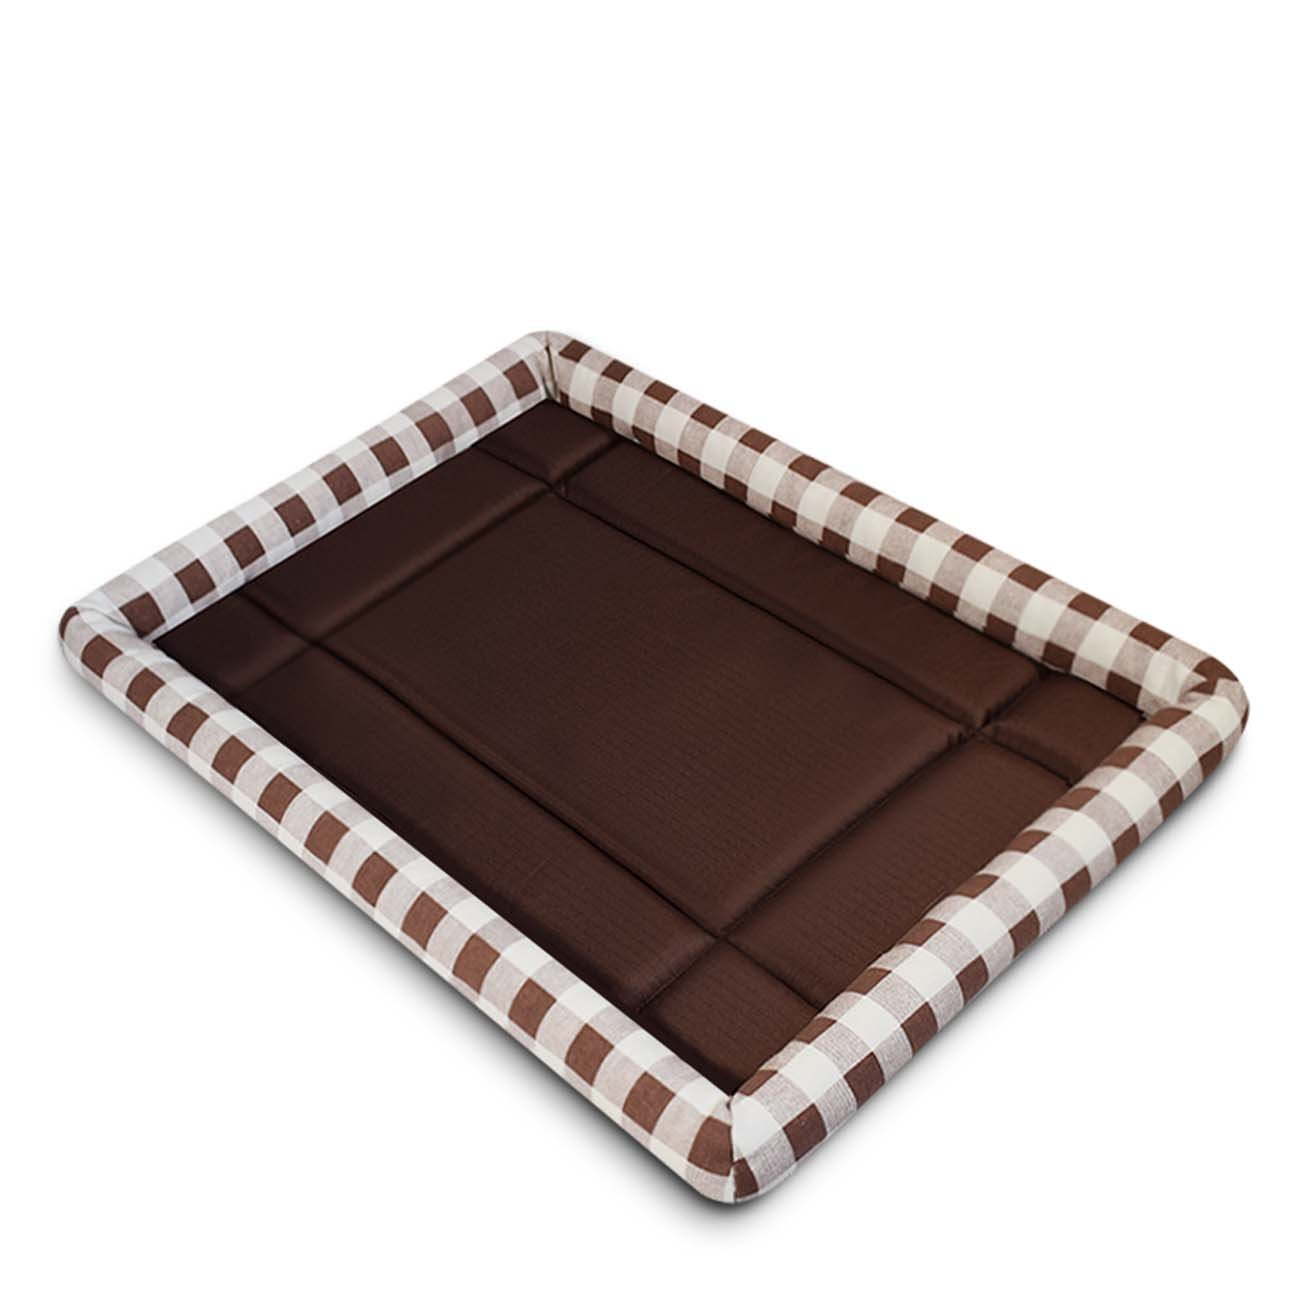 Brown Large Brown Large Black Manba Durable Comfortable Soft Cooling Pet Bed Cushion Mat Lightweight Portable Bolster Mat For Dog Cat Comfortable Non-sticky Hair Washable Floor Mattress For Cars (Multi-color Op